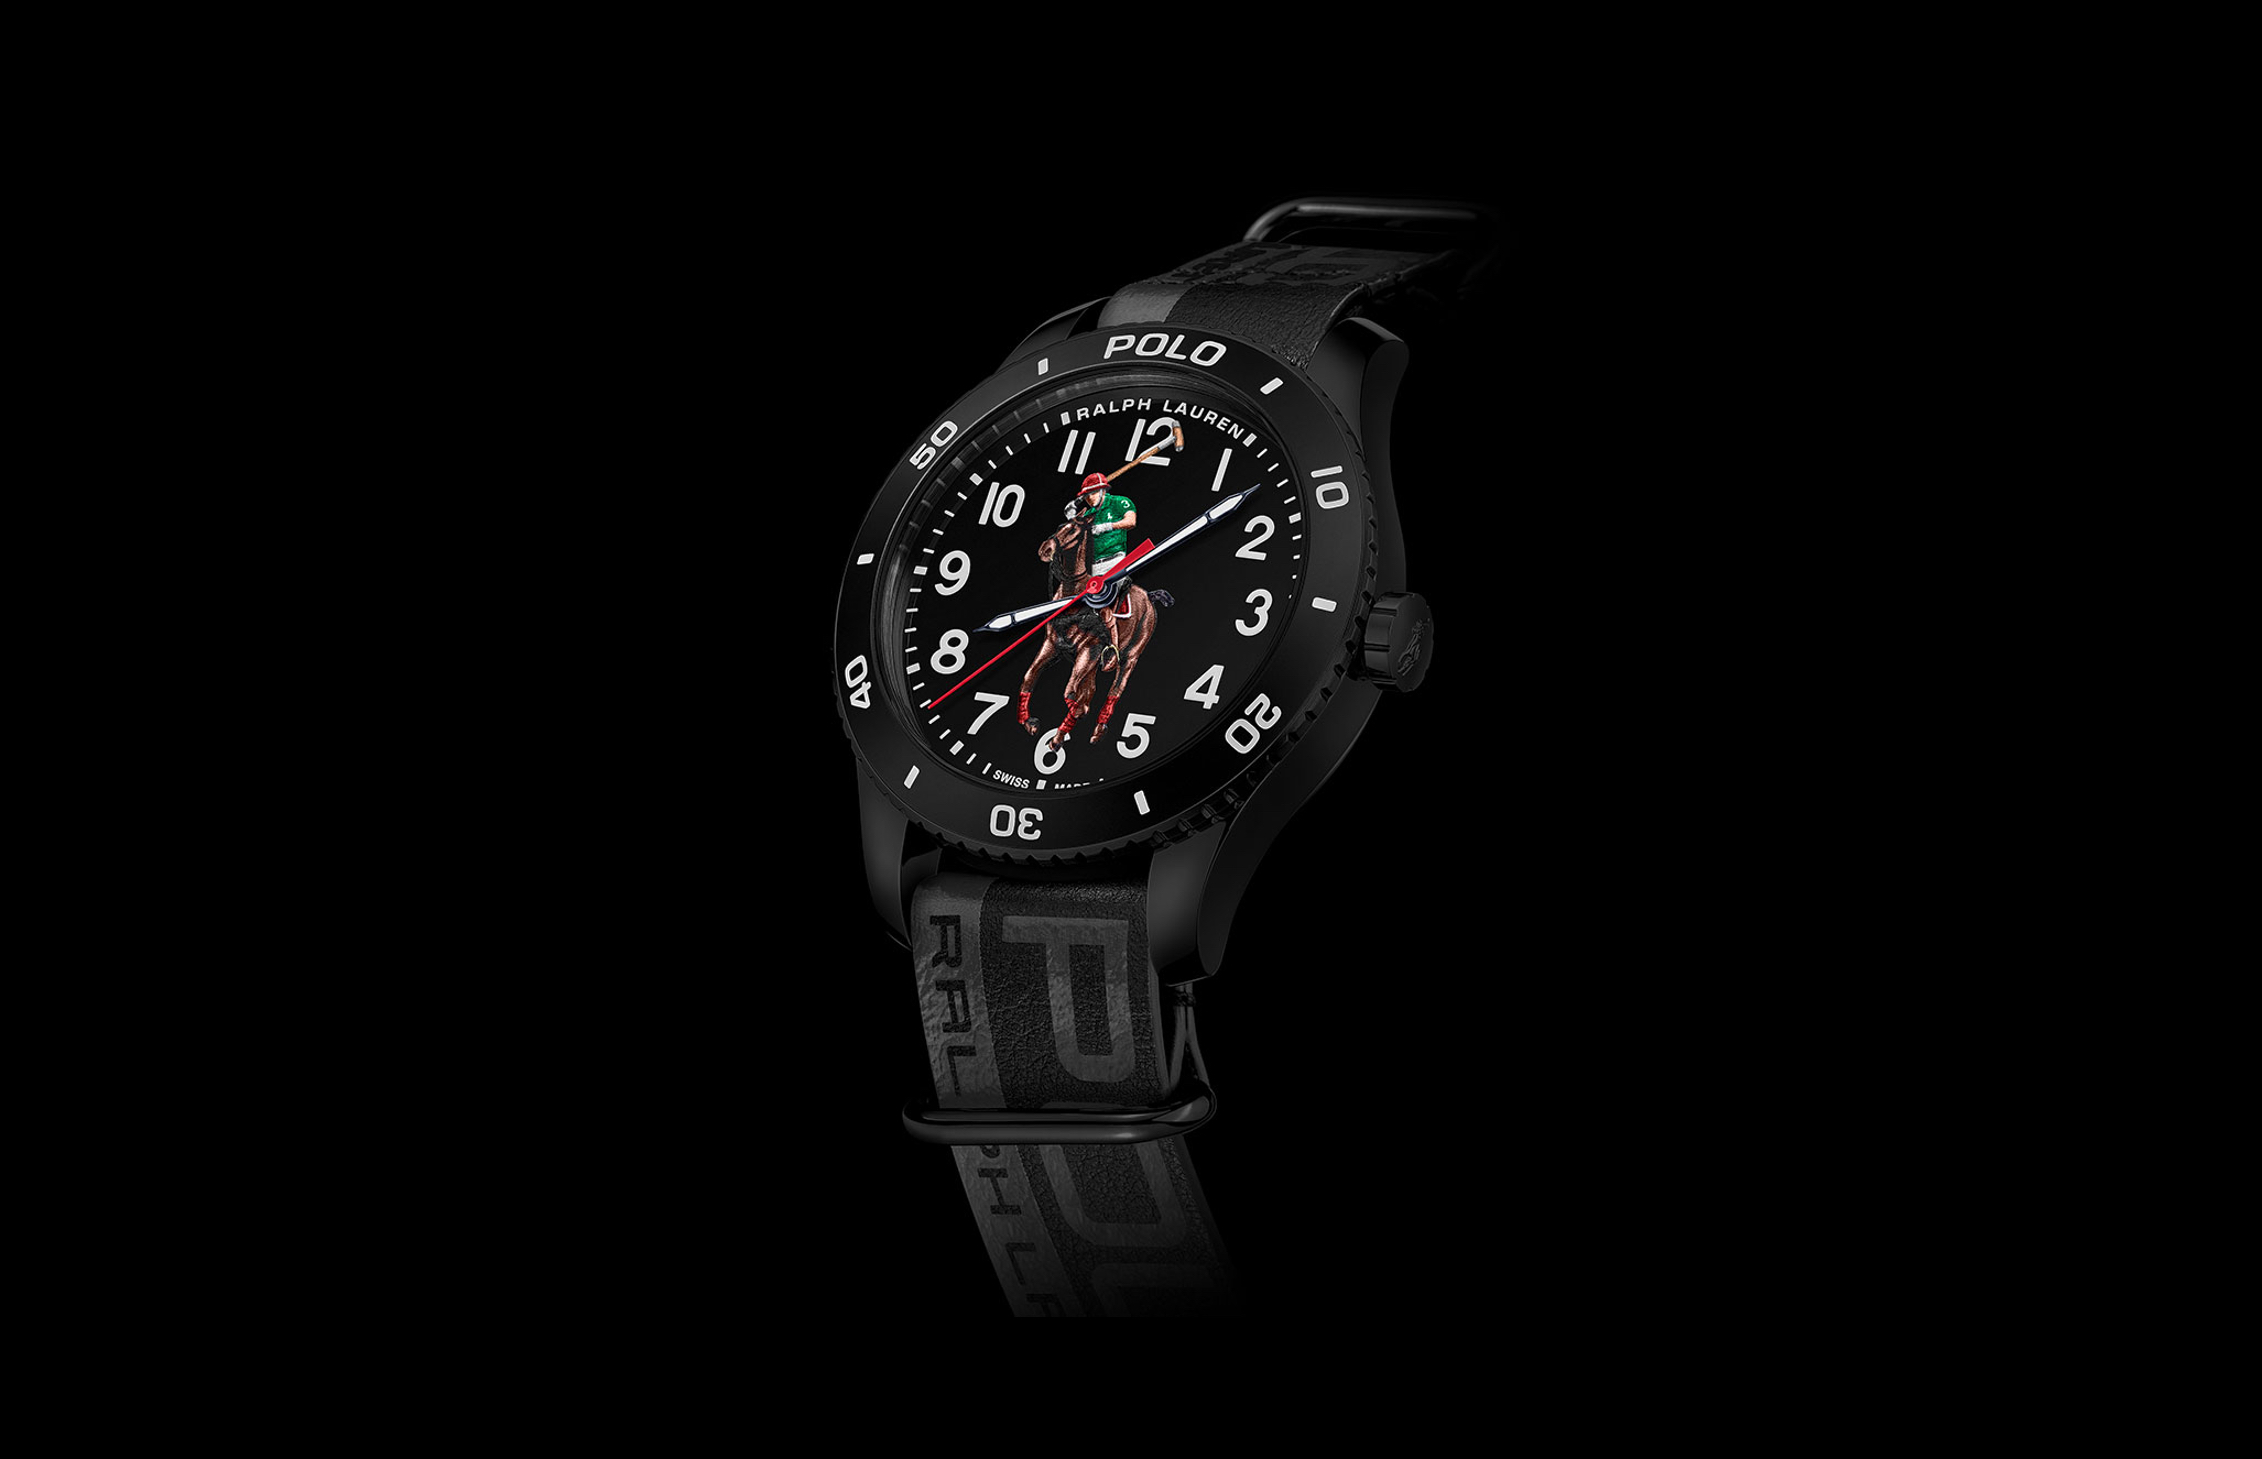 The Polo Watch by Ralph Lauren